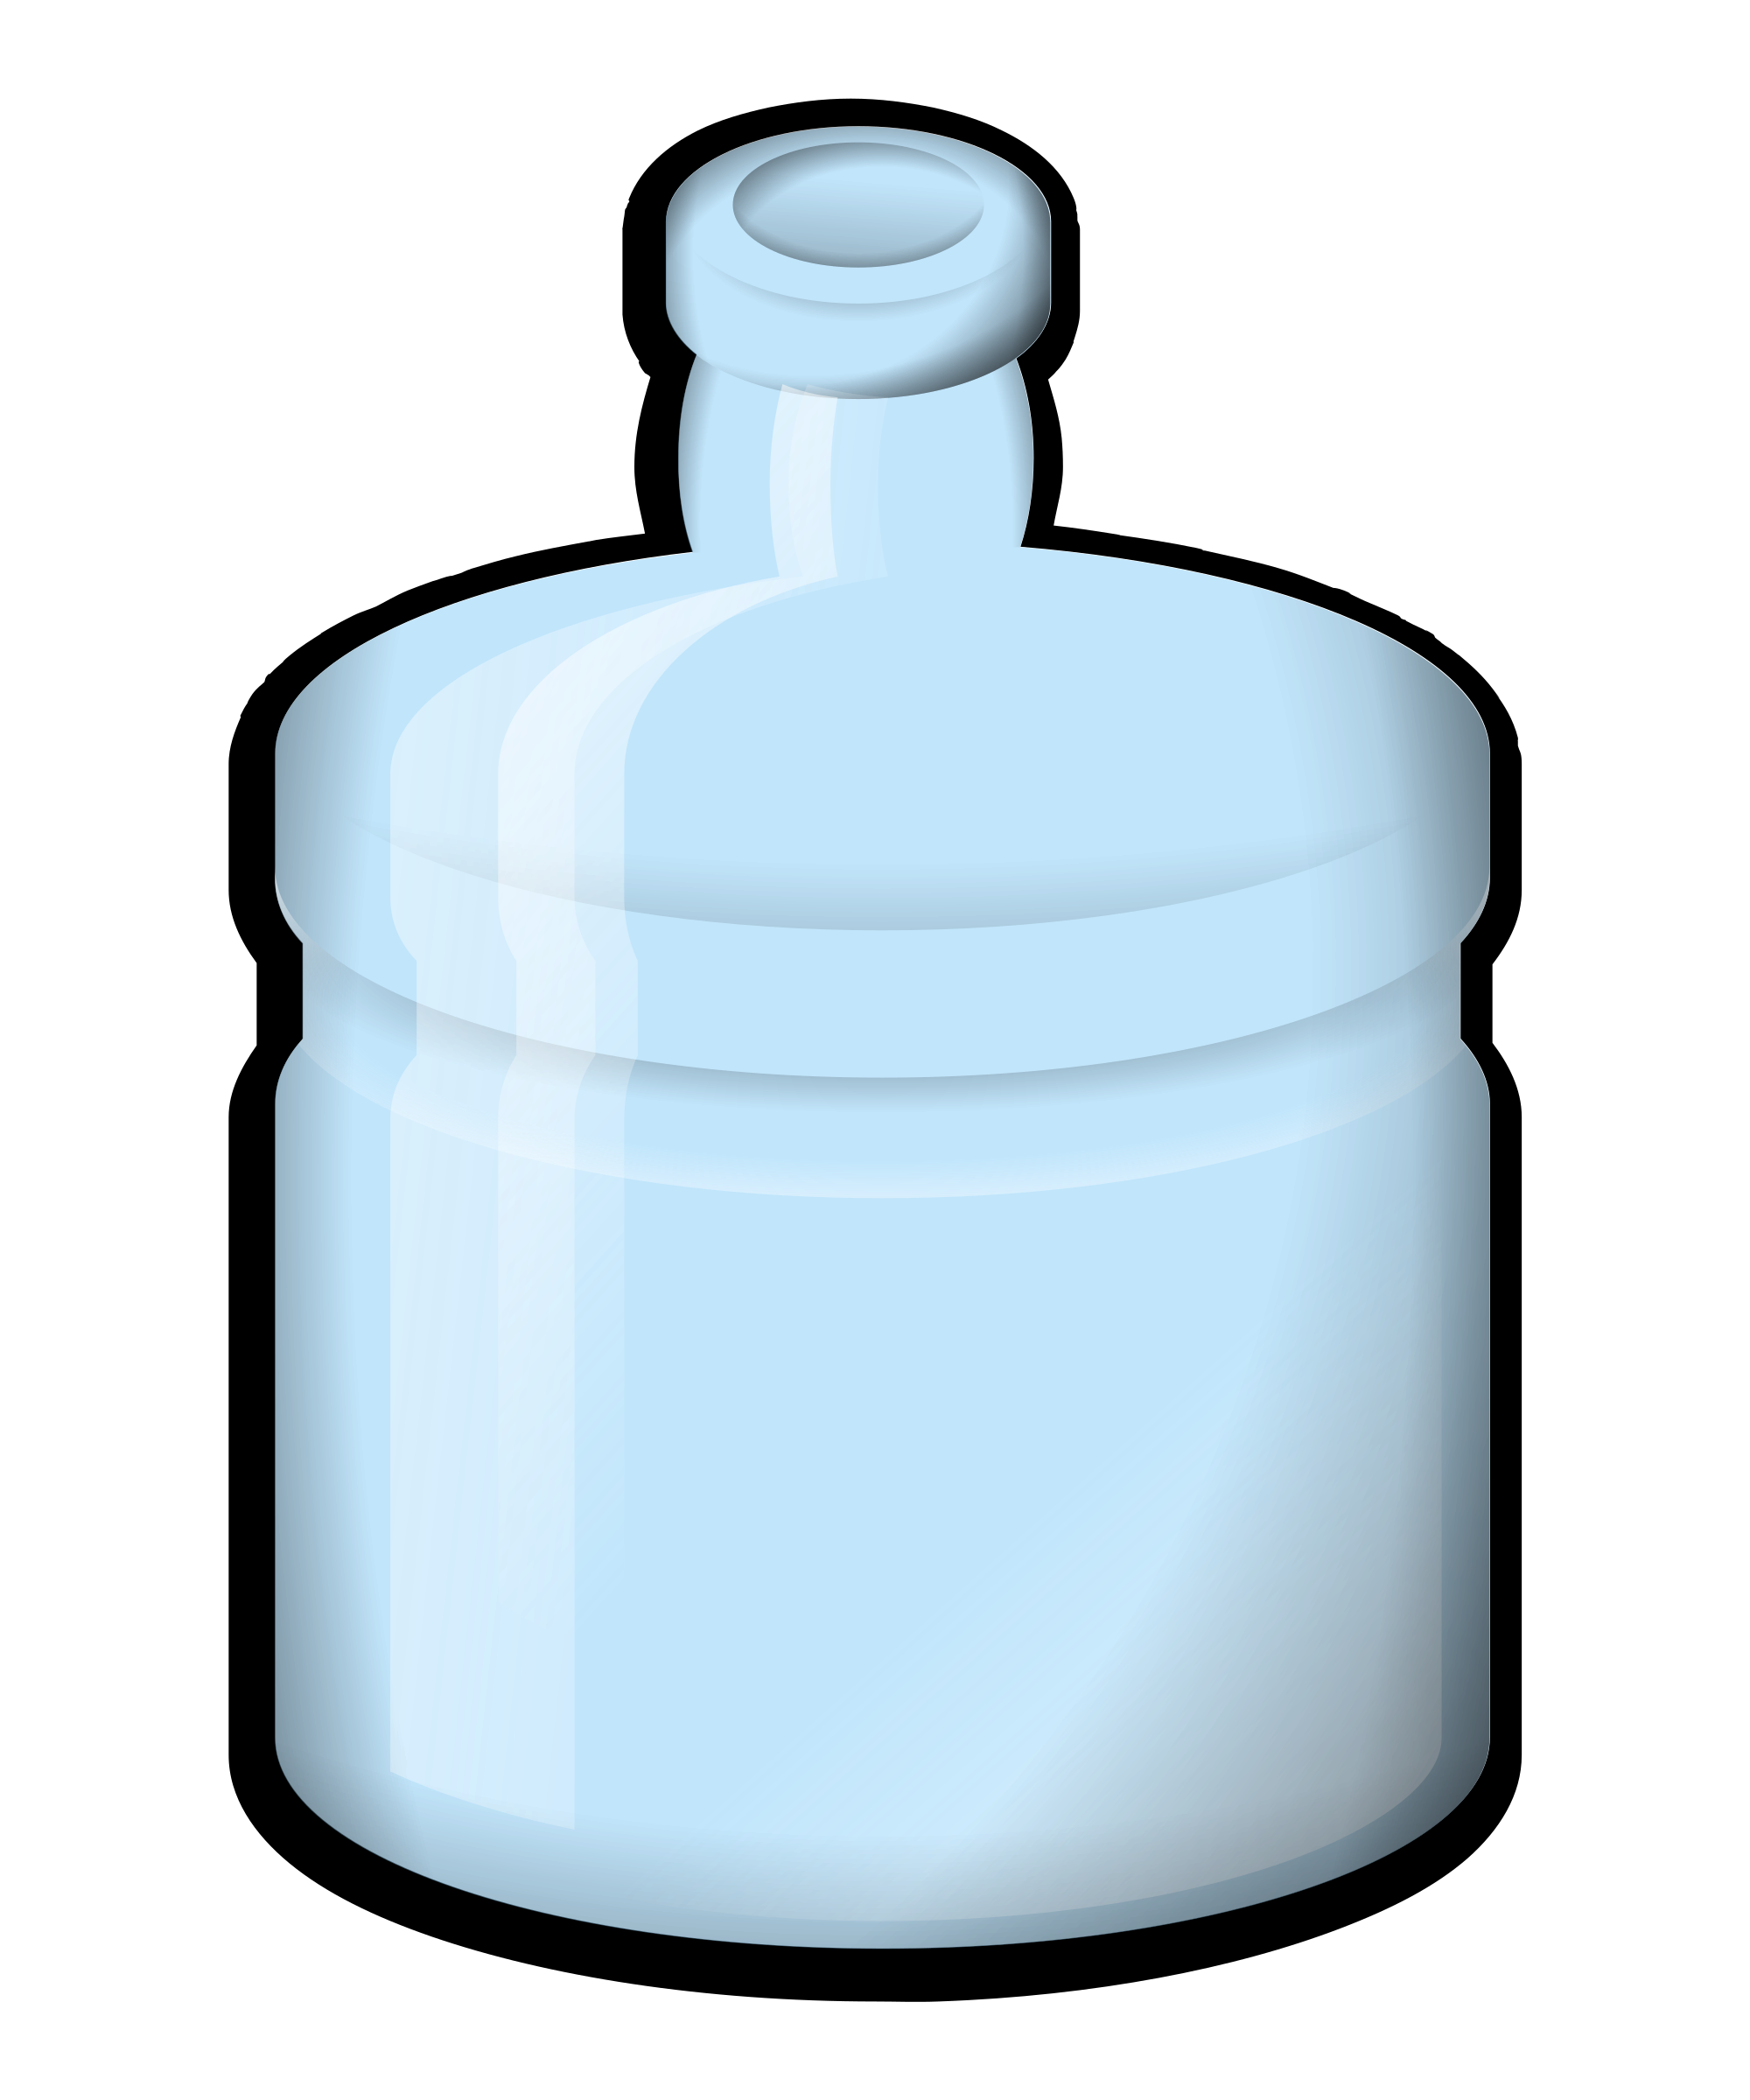 Water bottle by jonata